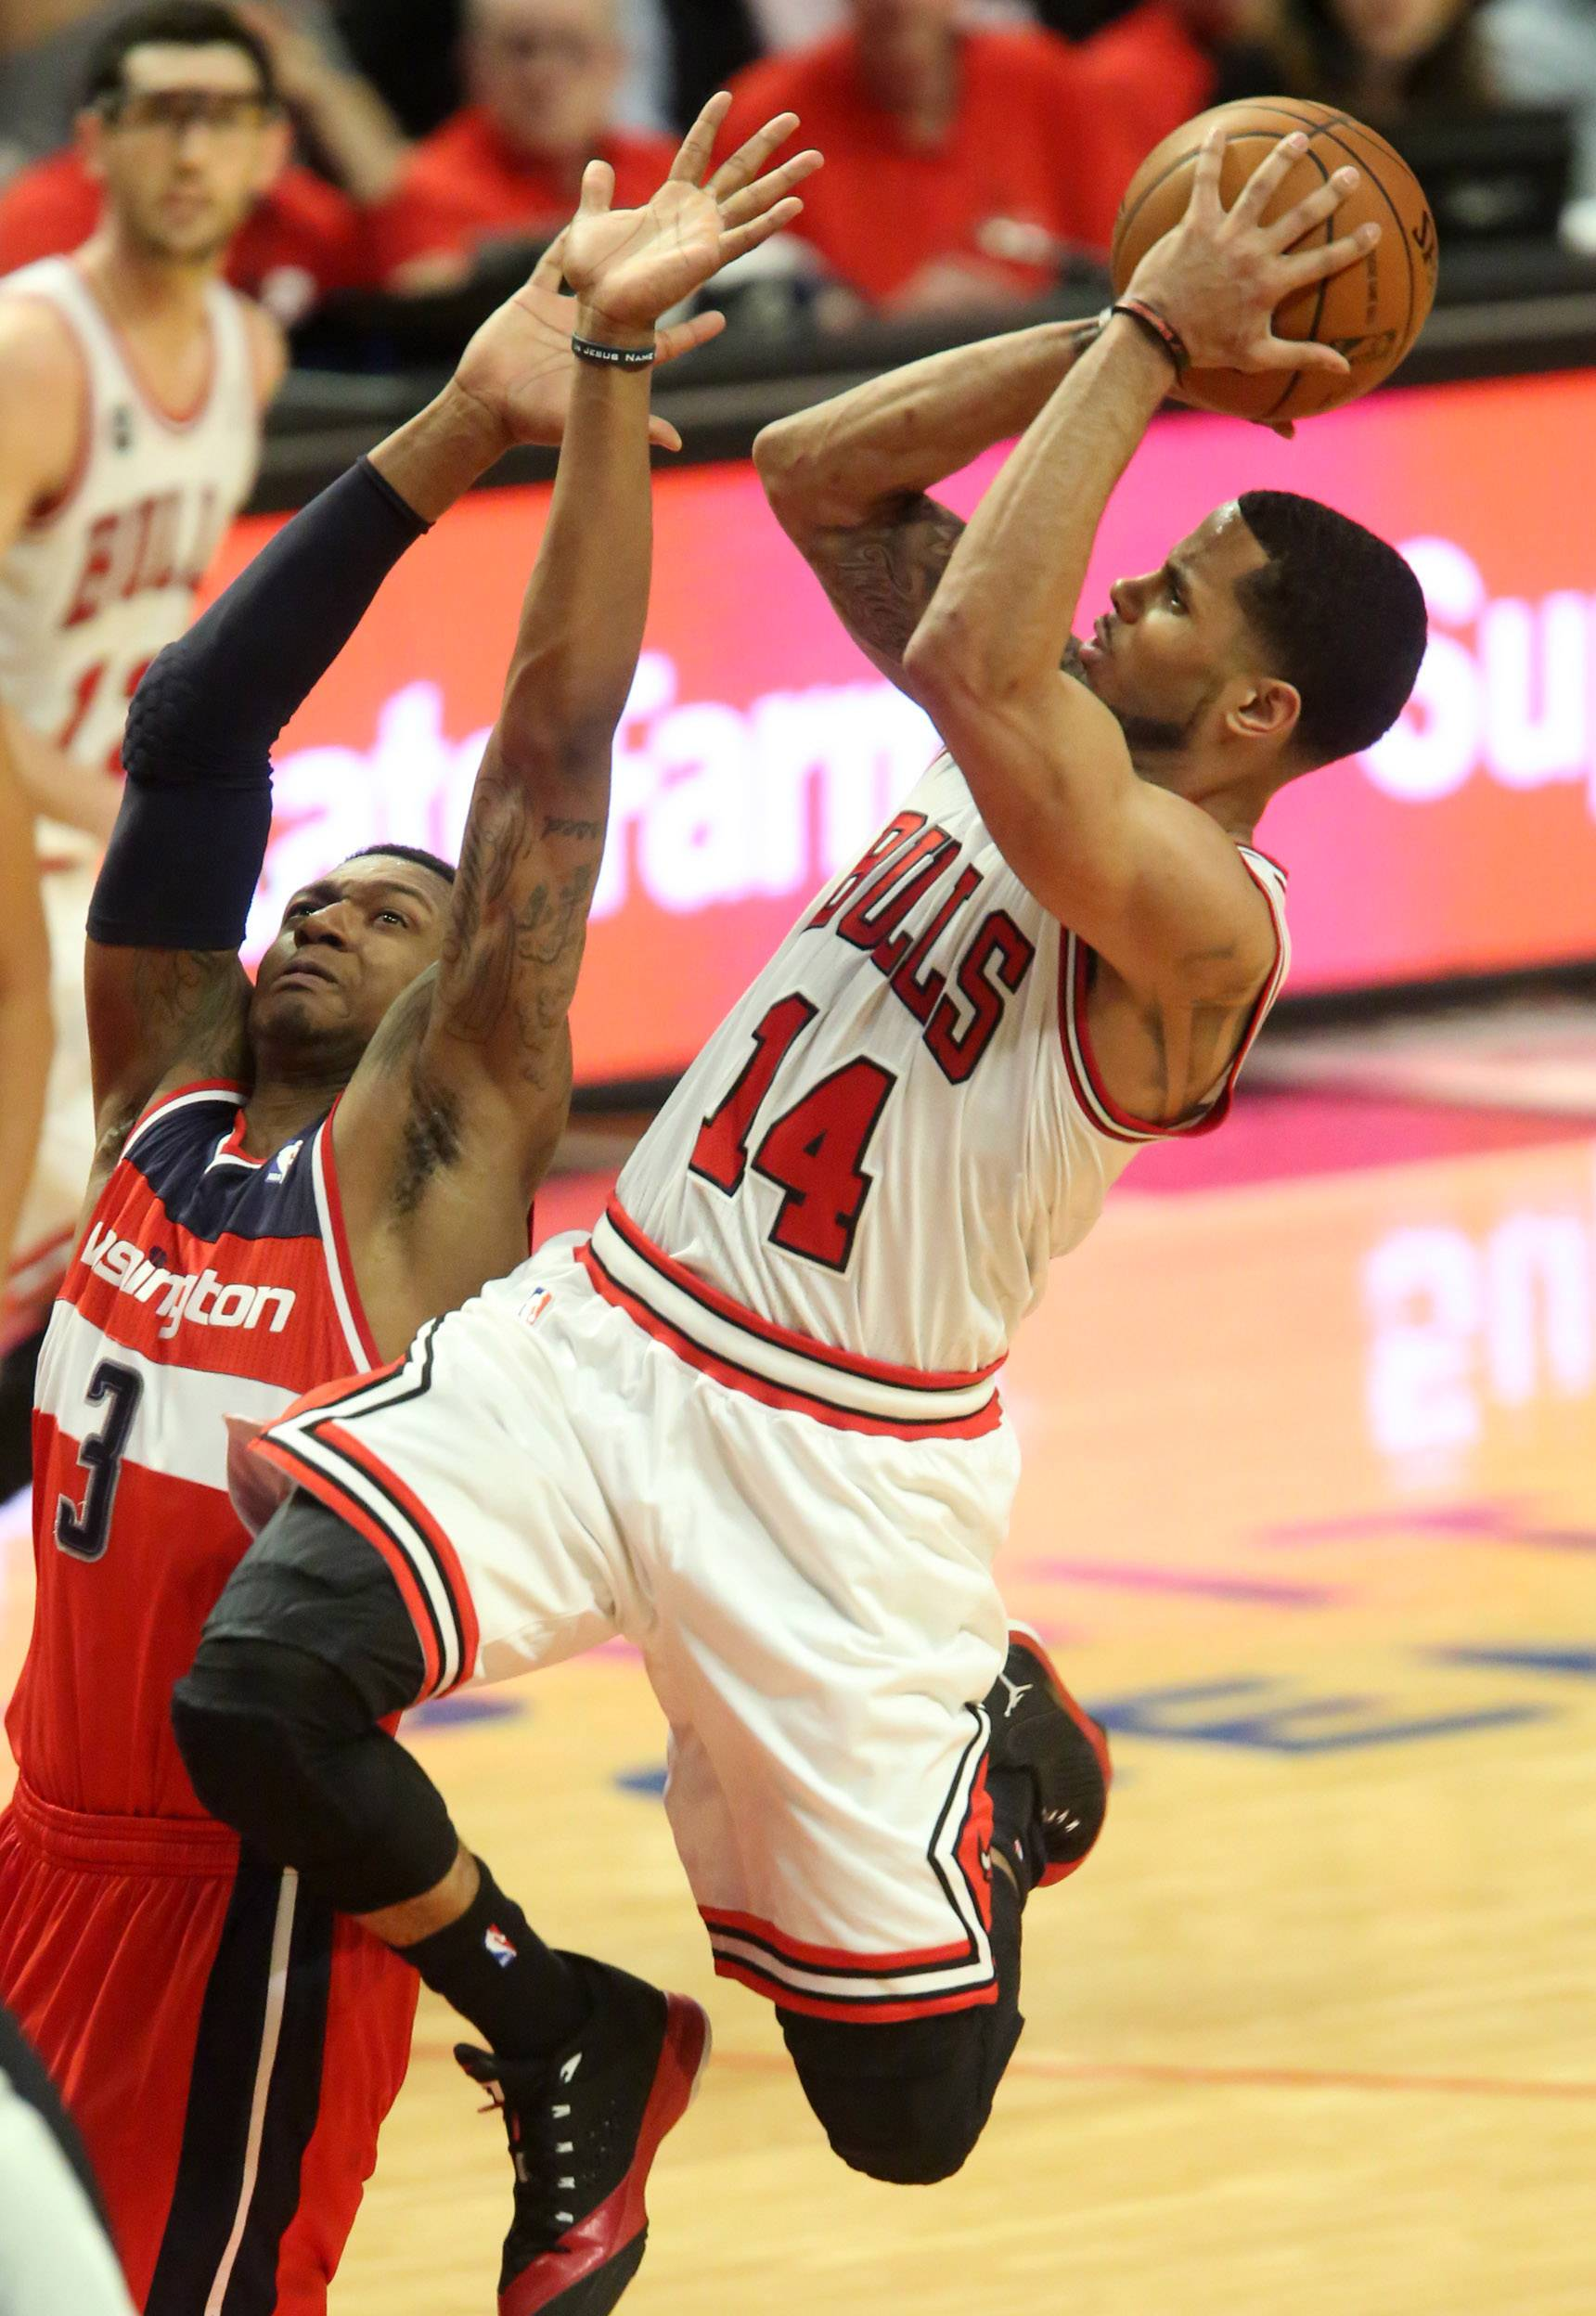 D.J. Augustin shoots against Bradley Beal during the Bulls' Game 1 loss to Washington on Sunday. Augustin was just 3 of 15 from the field.